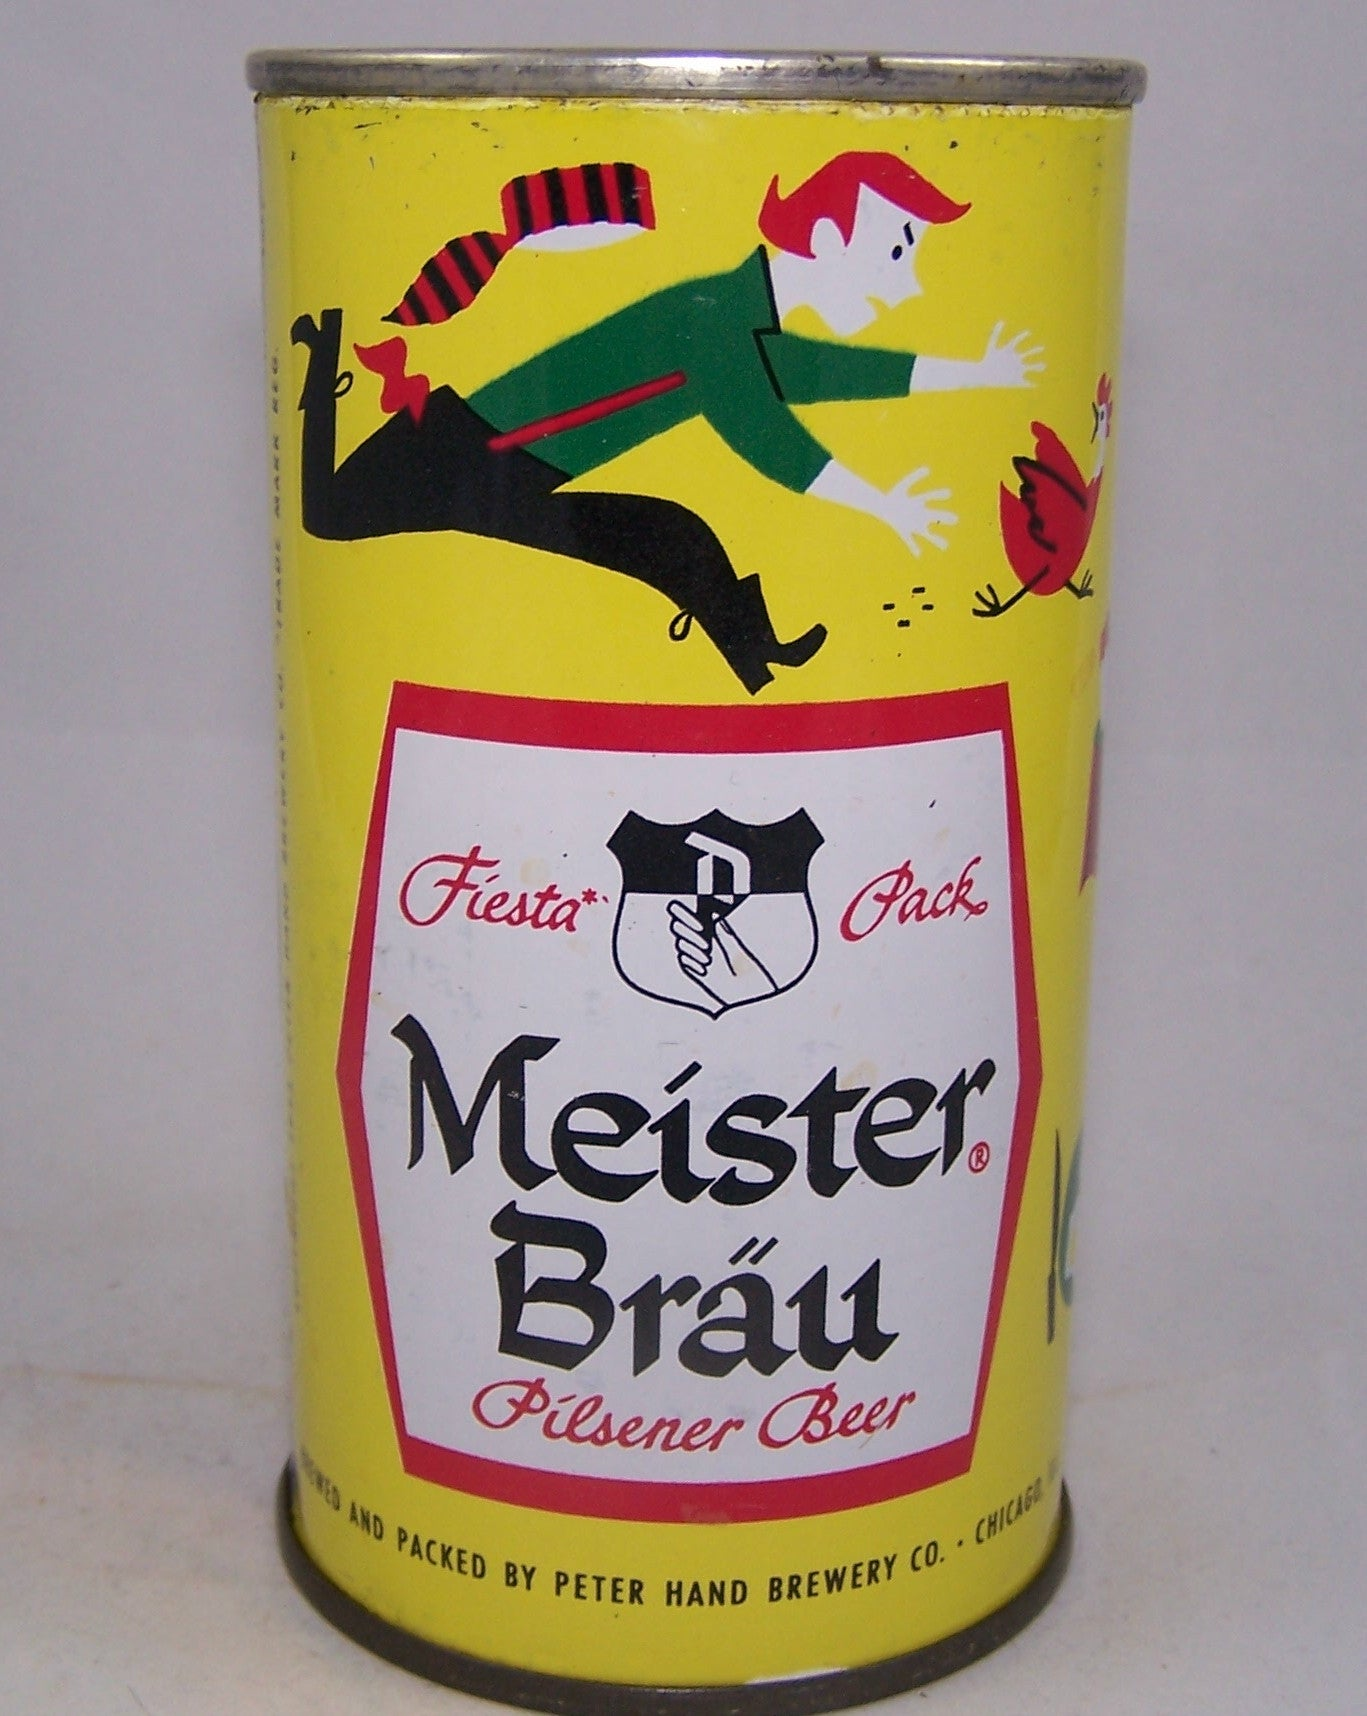 Meister Brau Beer (P In Hand) USBC 97-32, Grade 1 Sold on  6/18/16